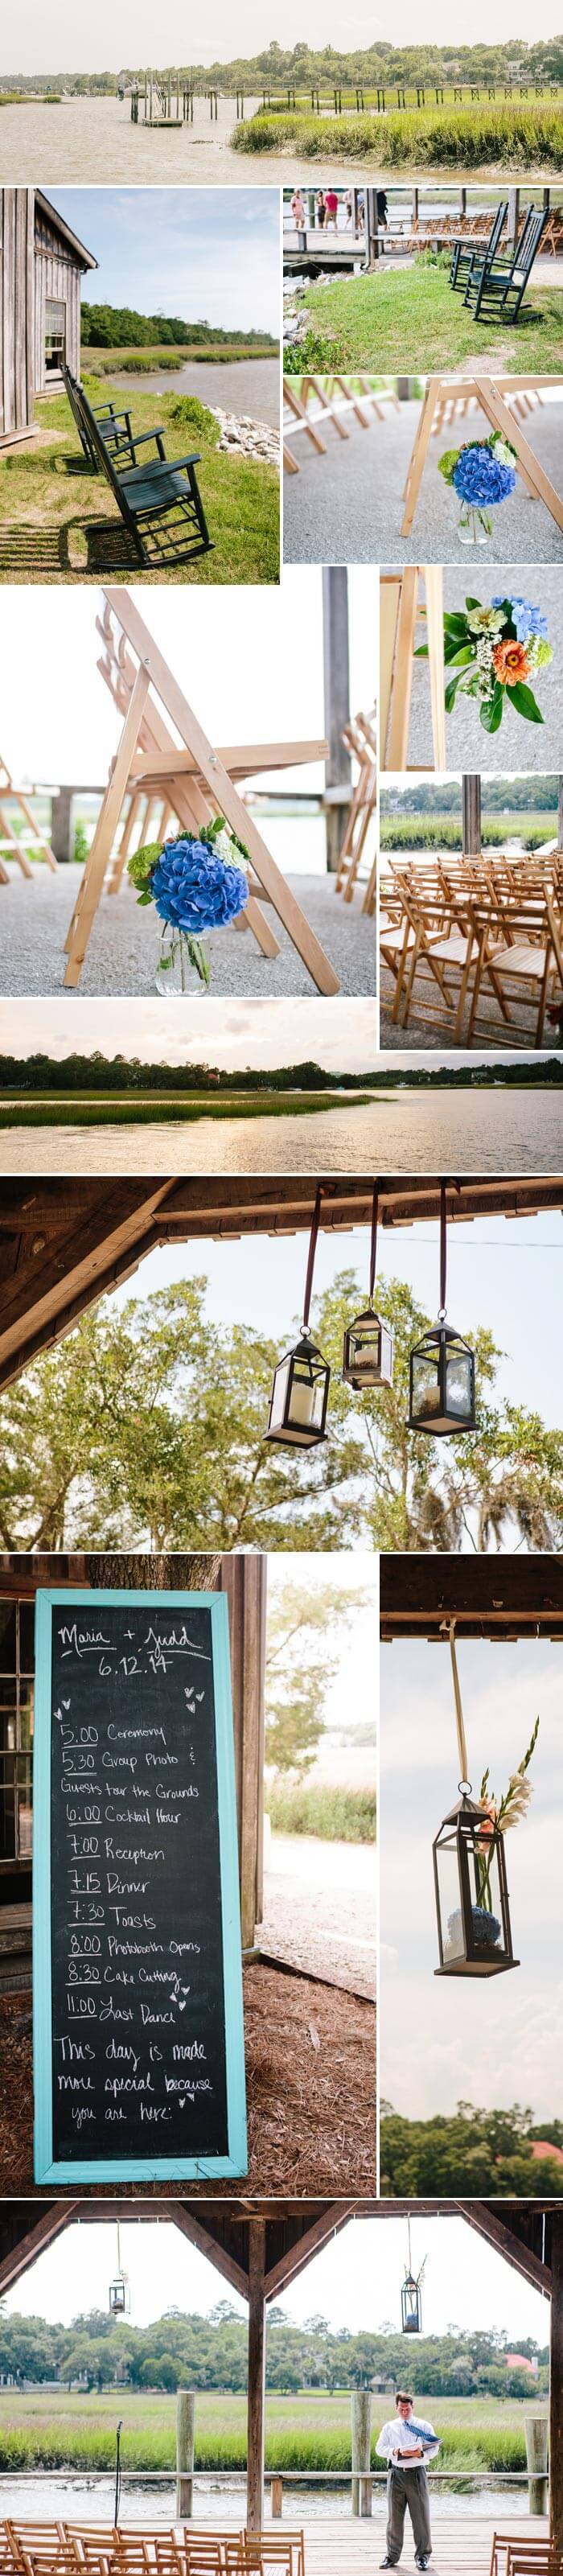 1632531483 531 The best tips ideas inspiration for country style - The best tips, ideas & inspiration for country style